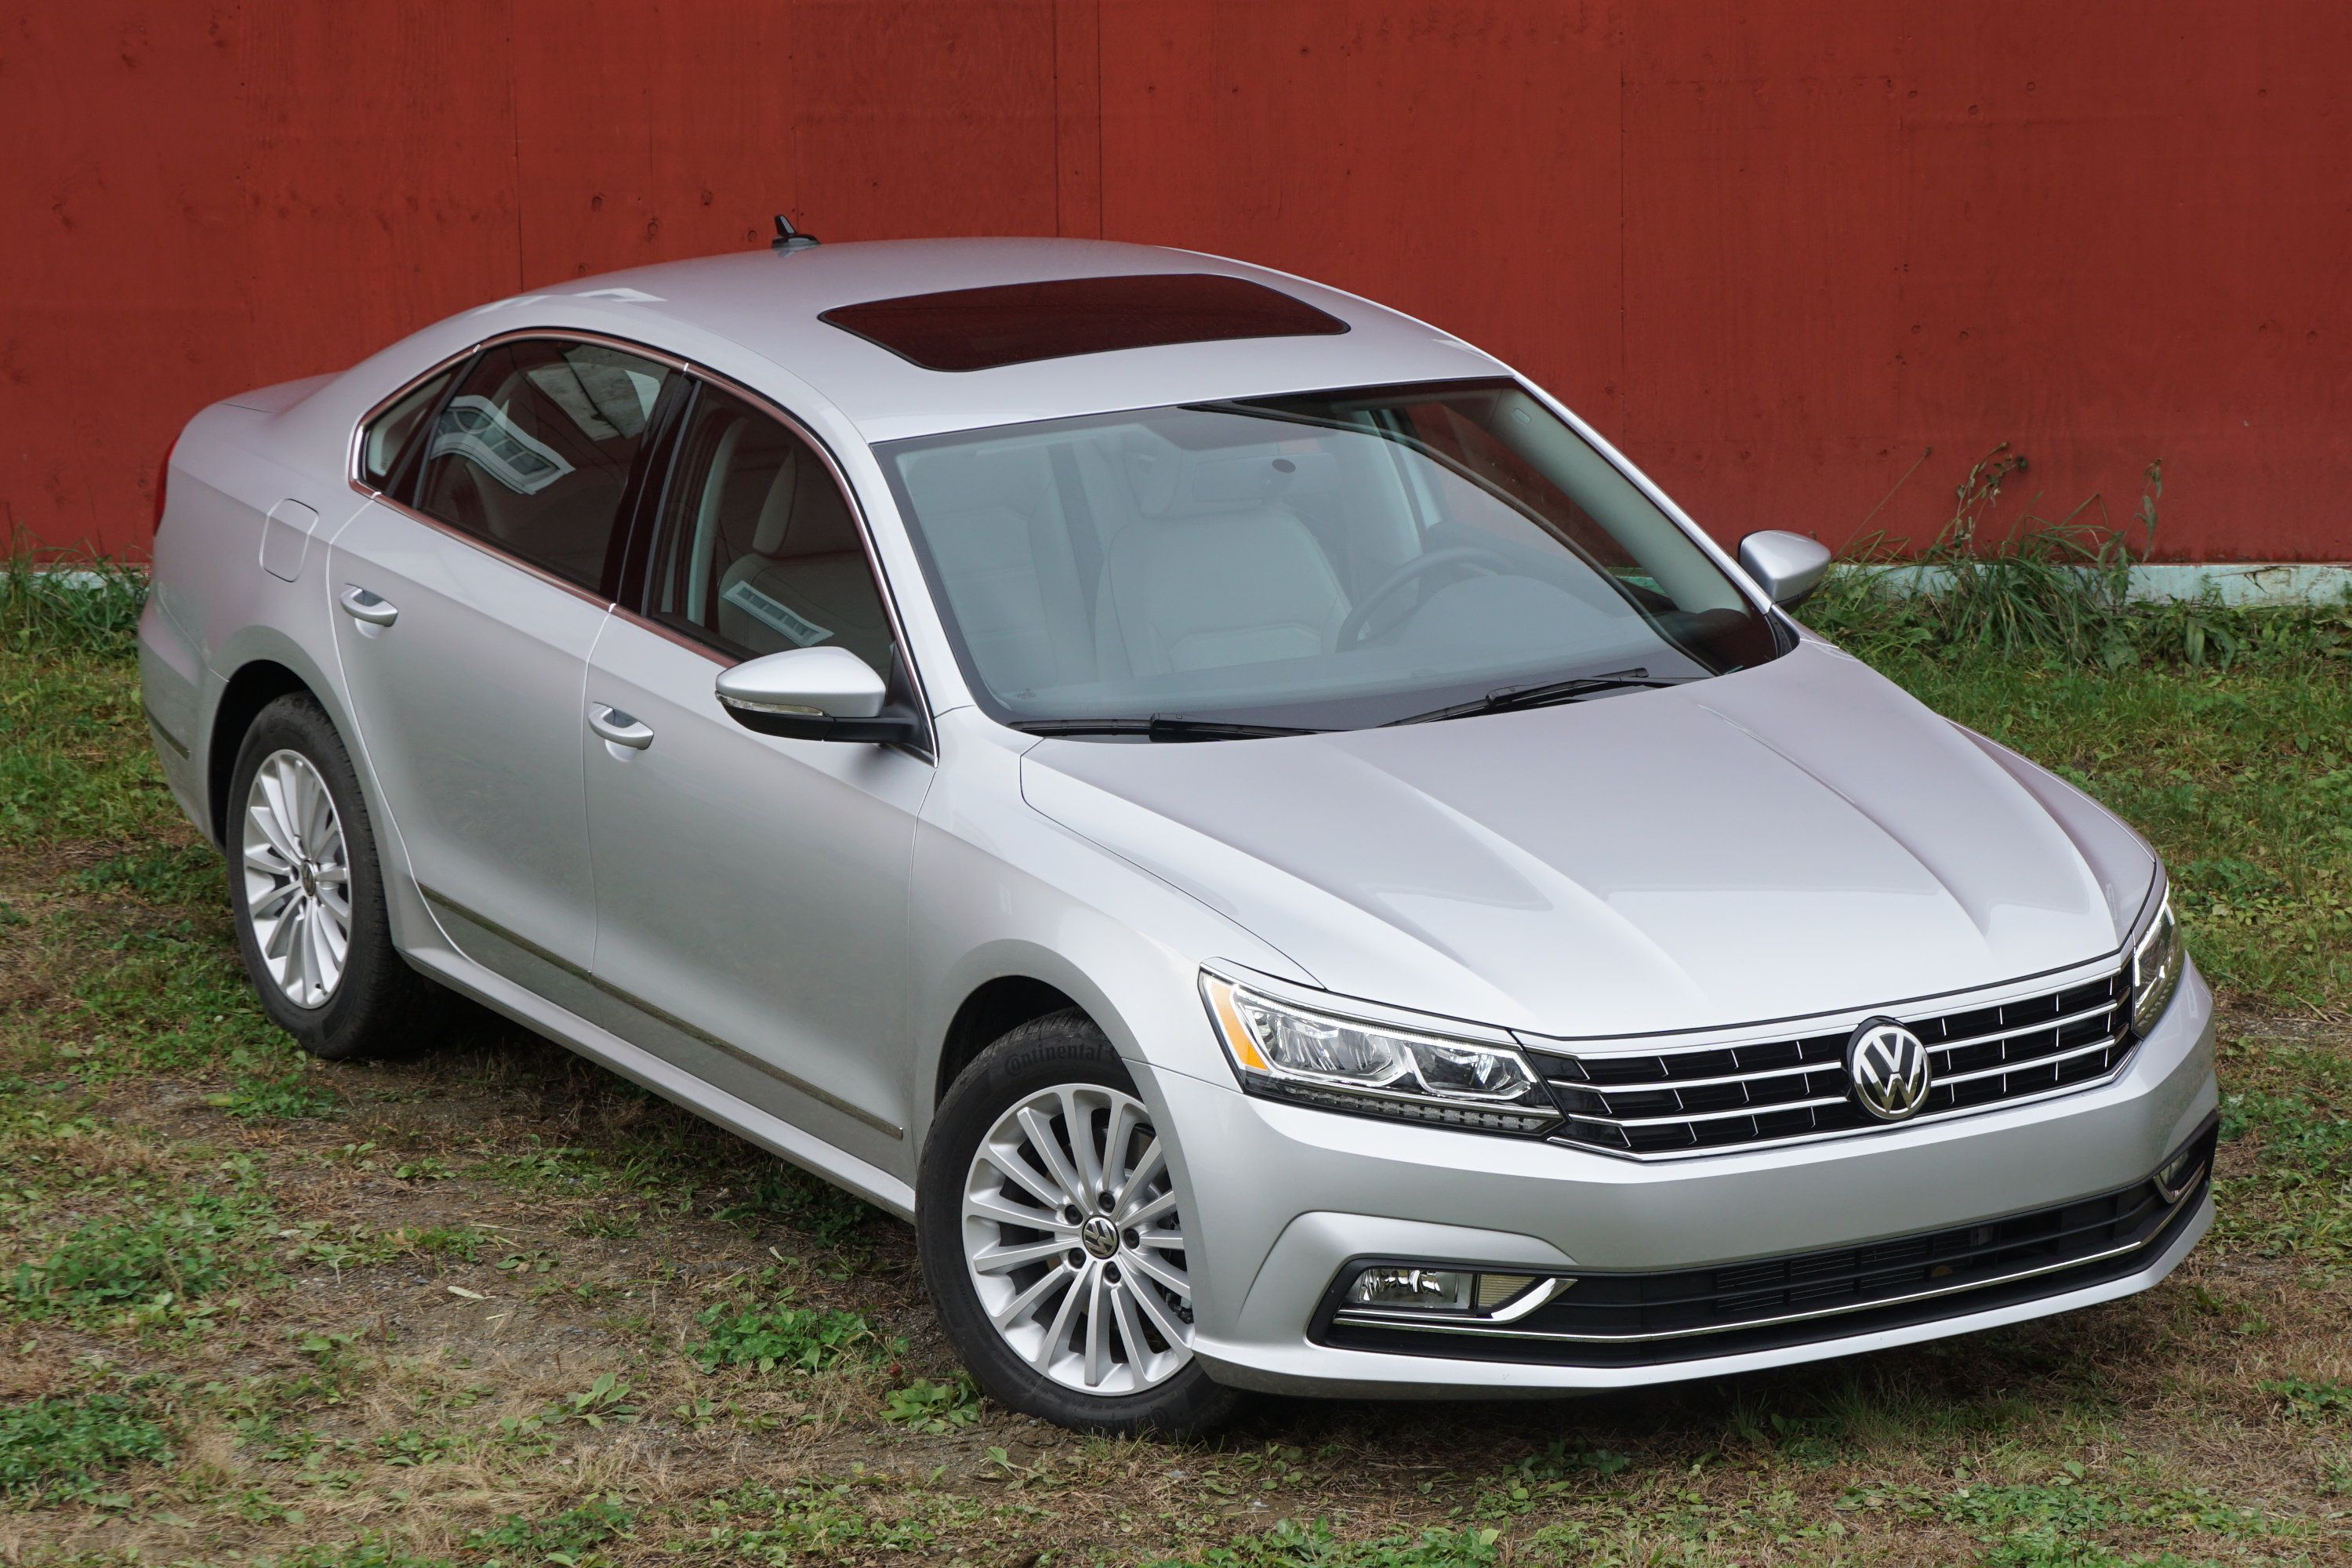 highline volkswagen passat drive test of review expert